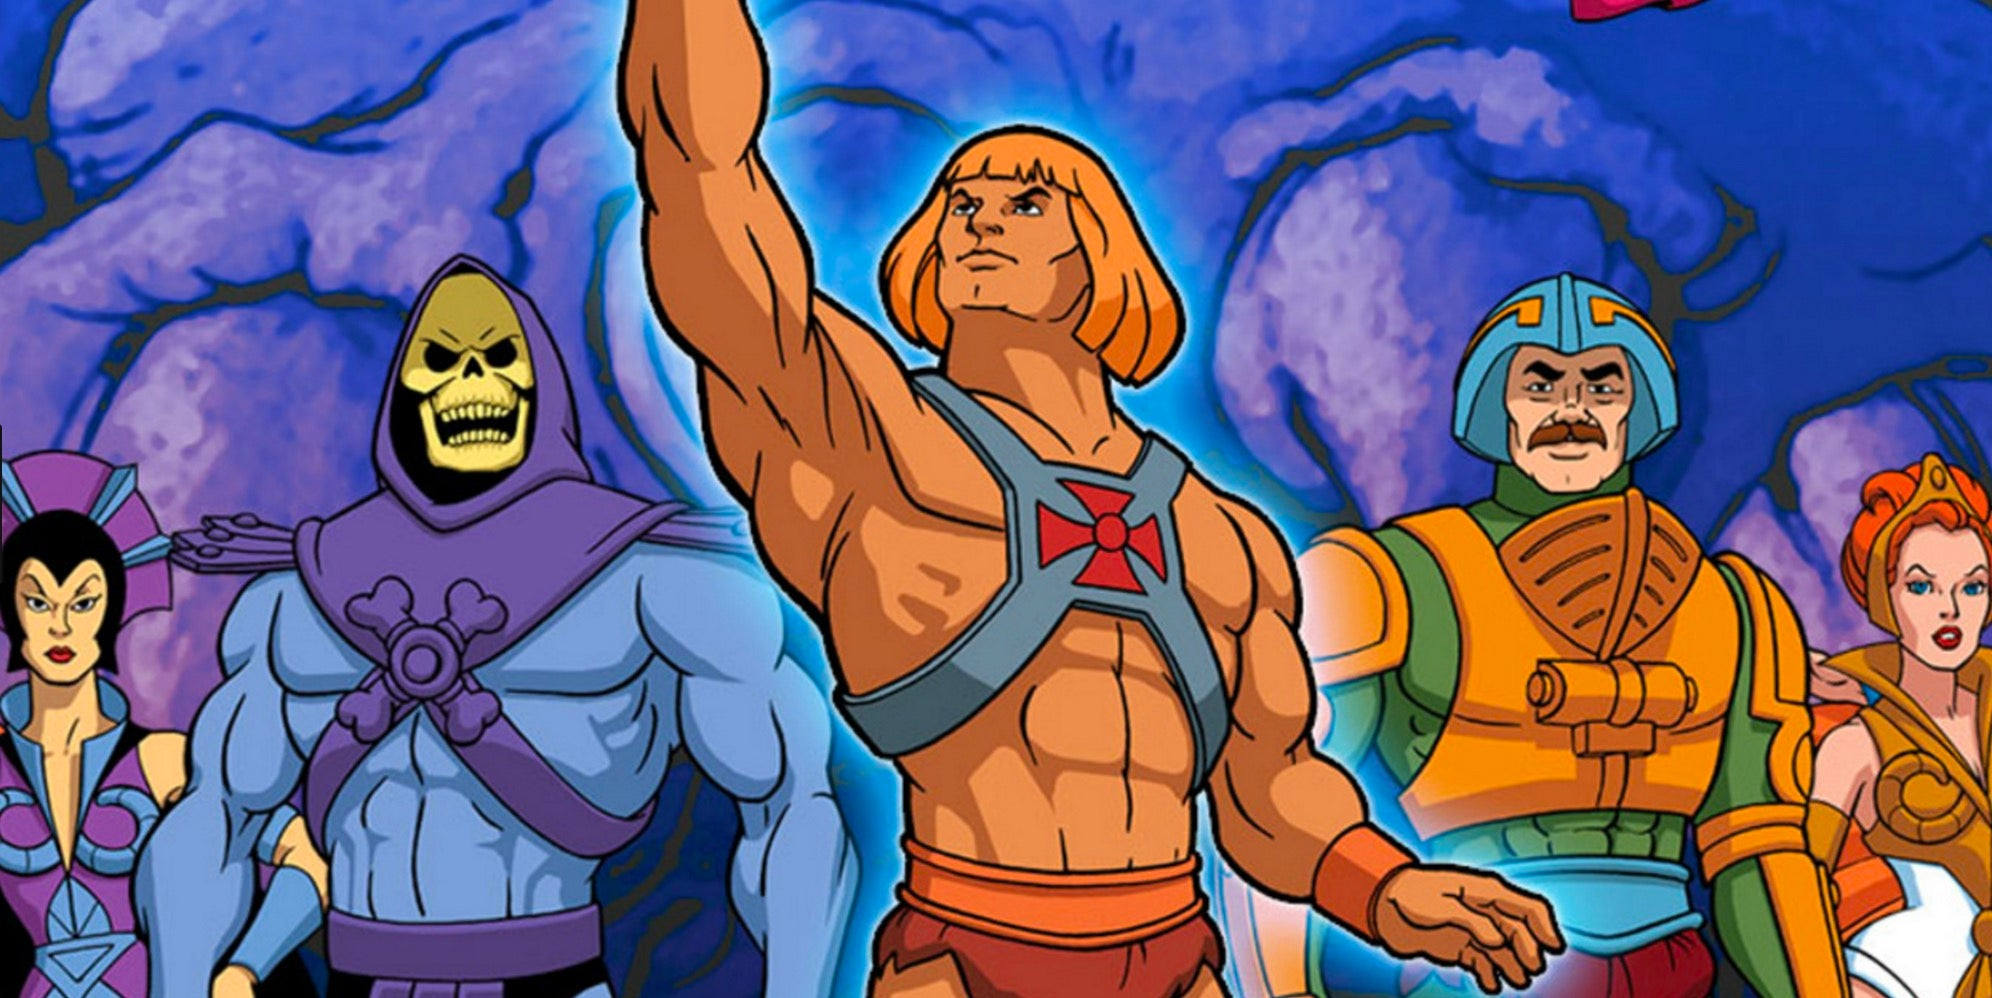 Masters Of The Universe Reboot Movie Will Arrive in 2019